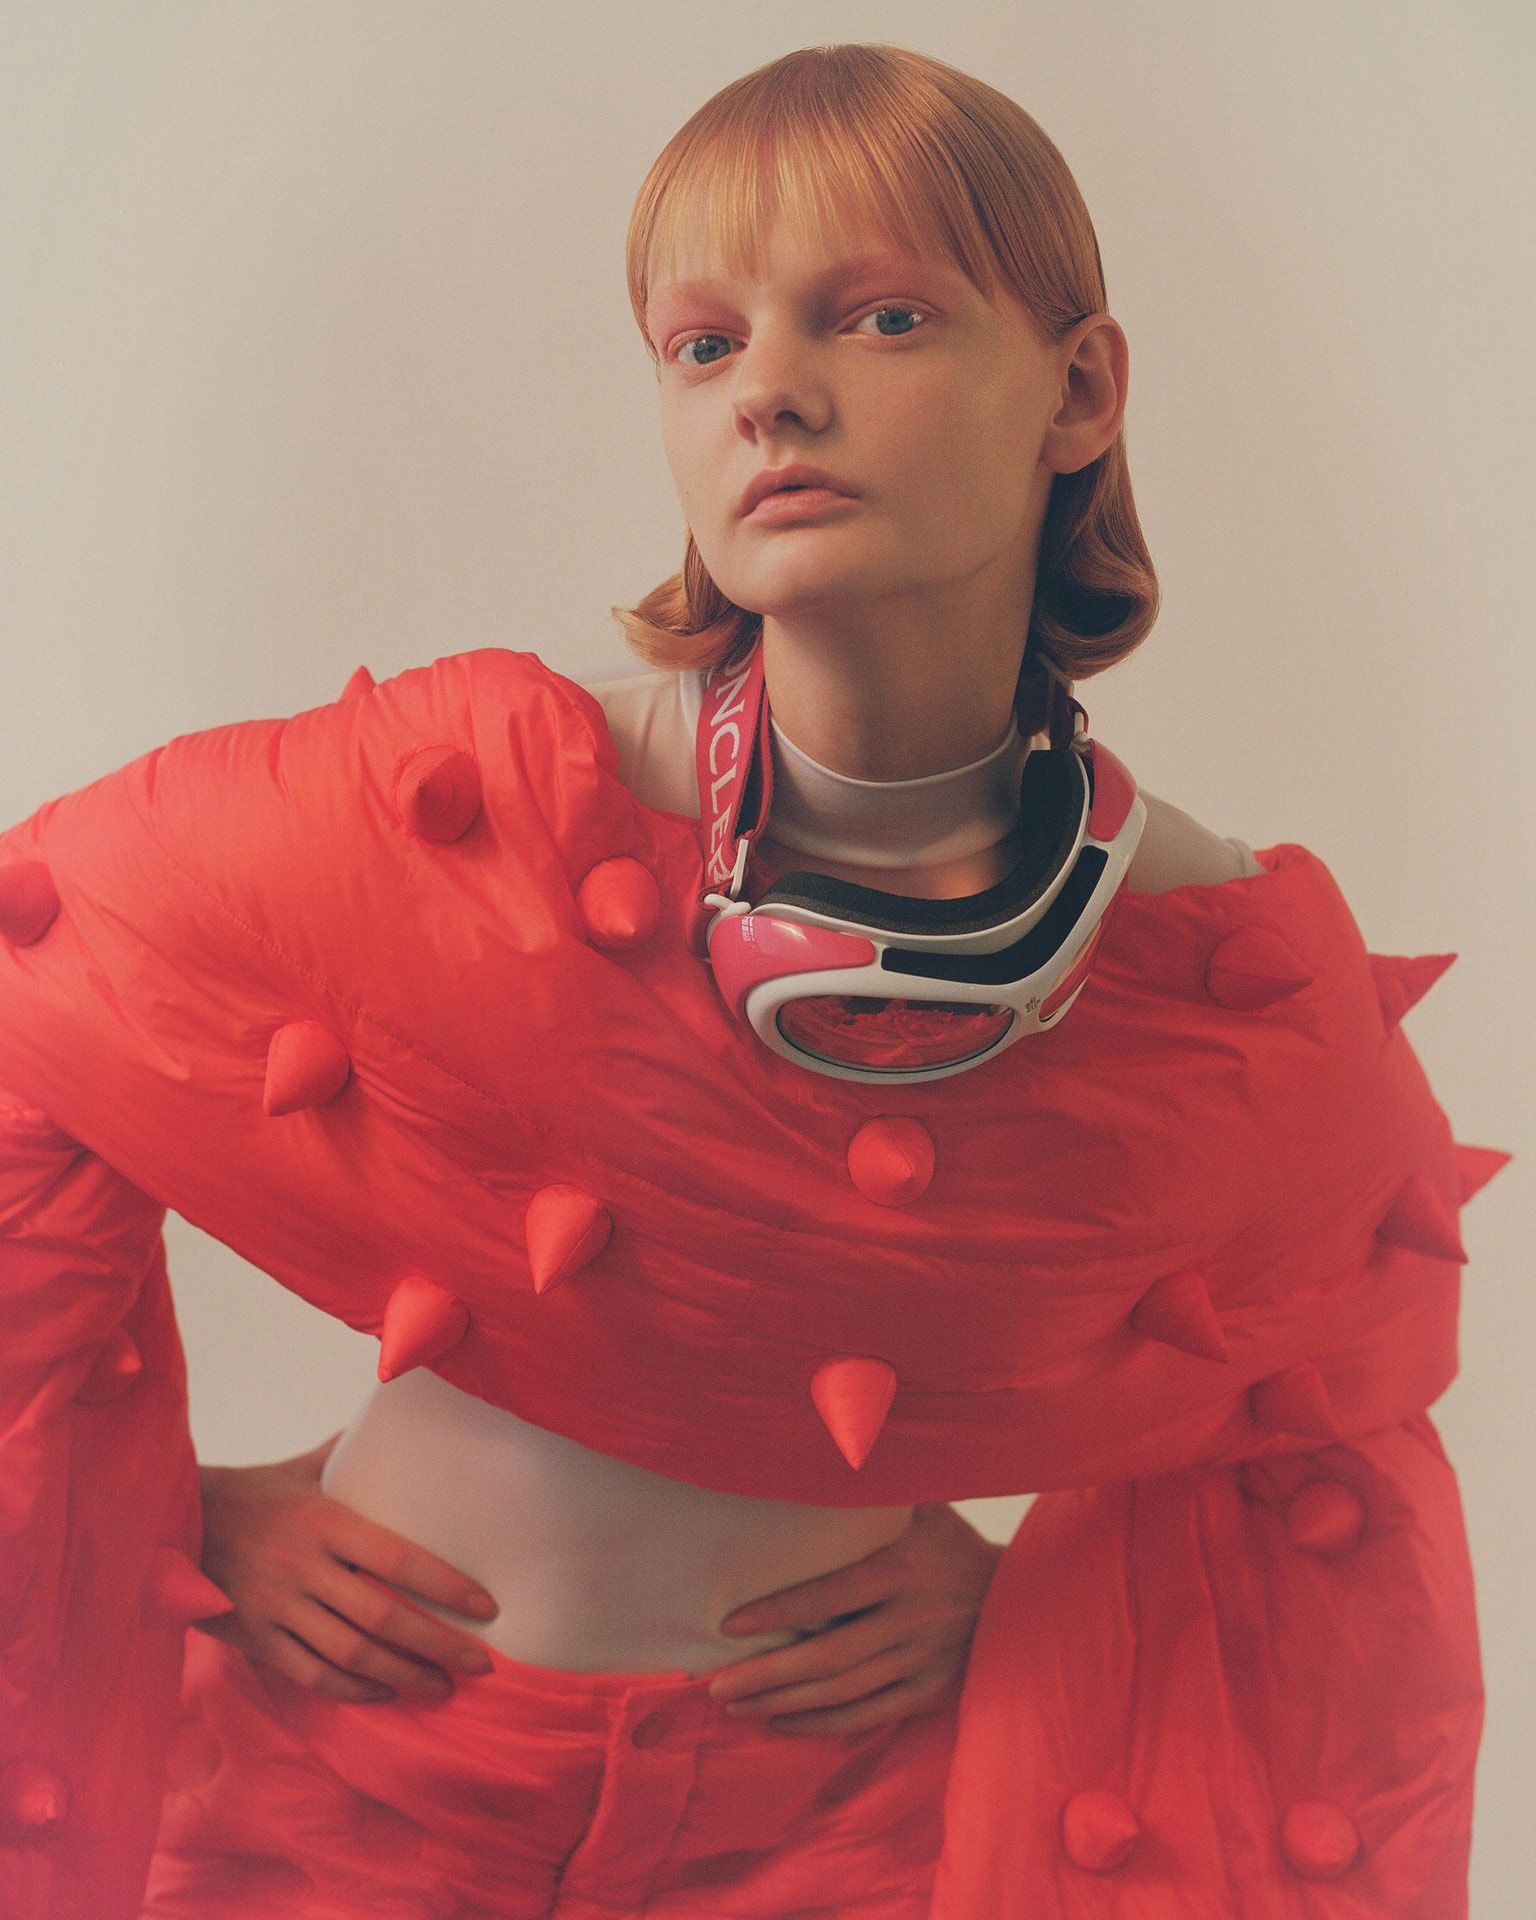 redhead model with hands on hips looking at camera wearing puffy red pants and red puffy spiked long scarf photographed by Oumayma B Tanfous for Moncler as a story for Document Journal magazine